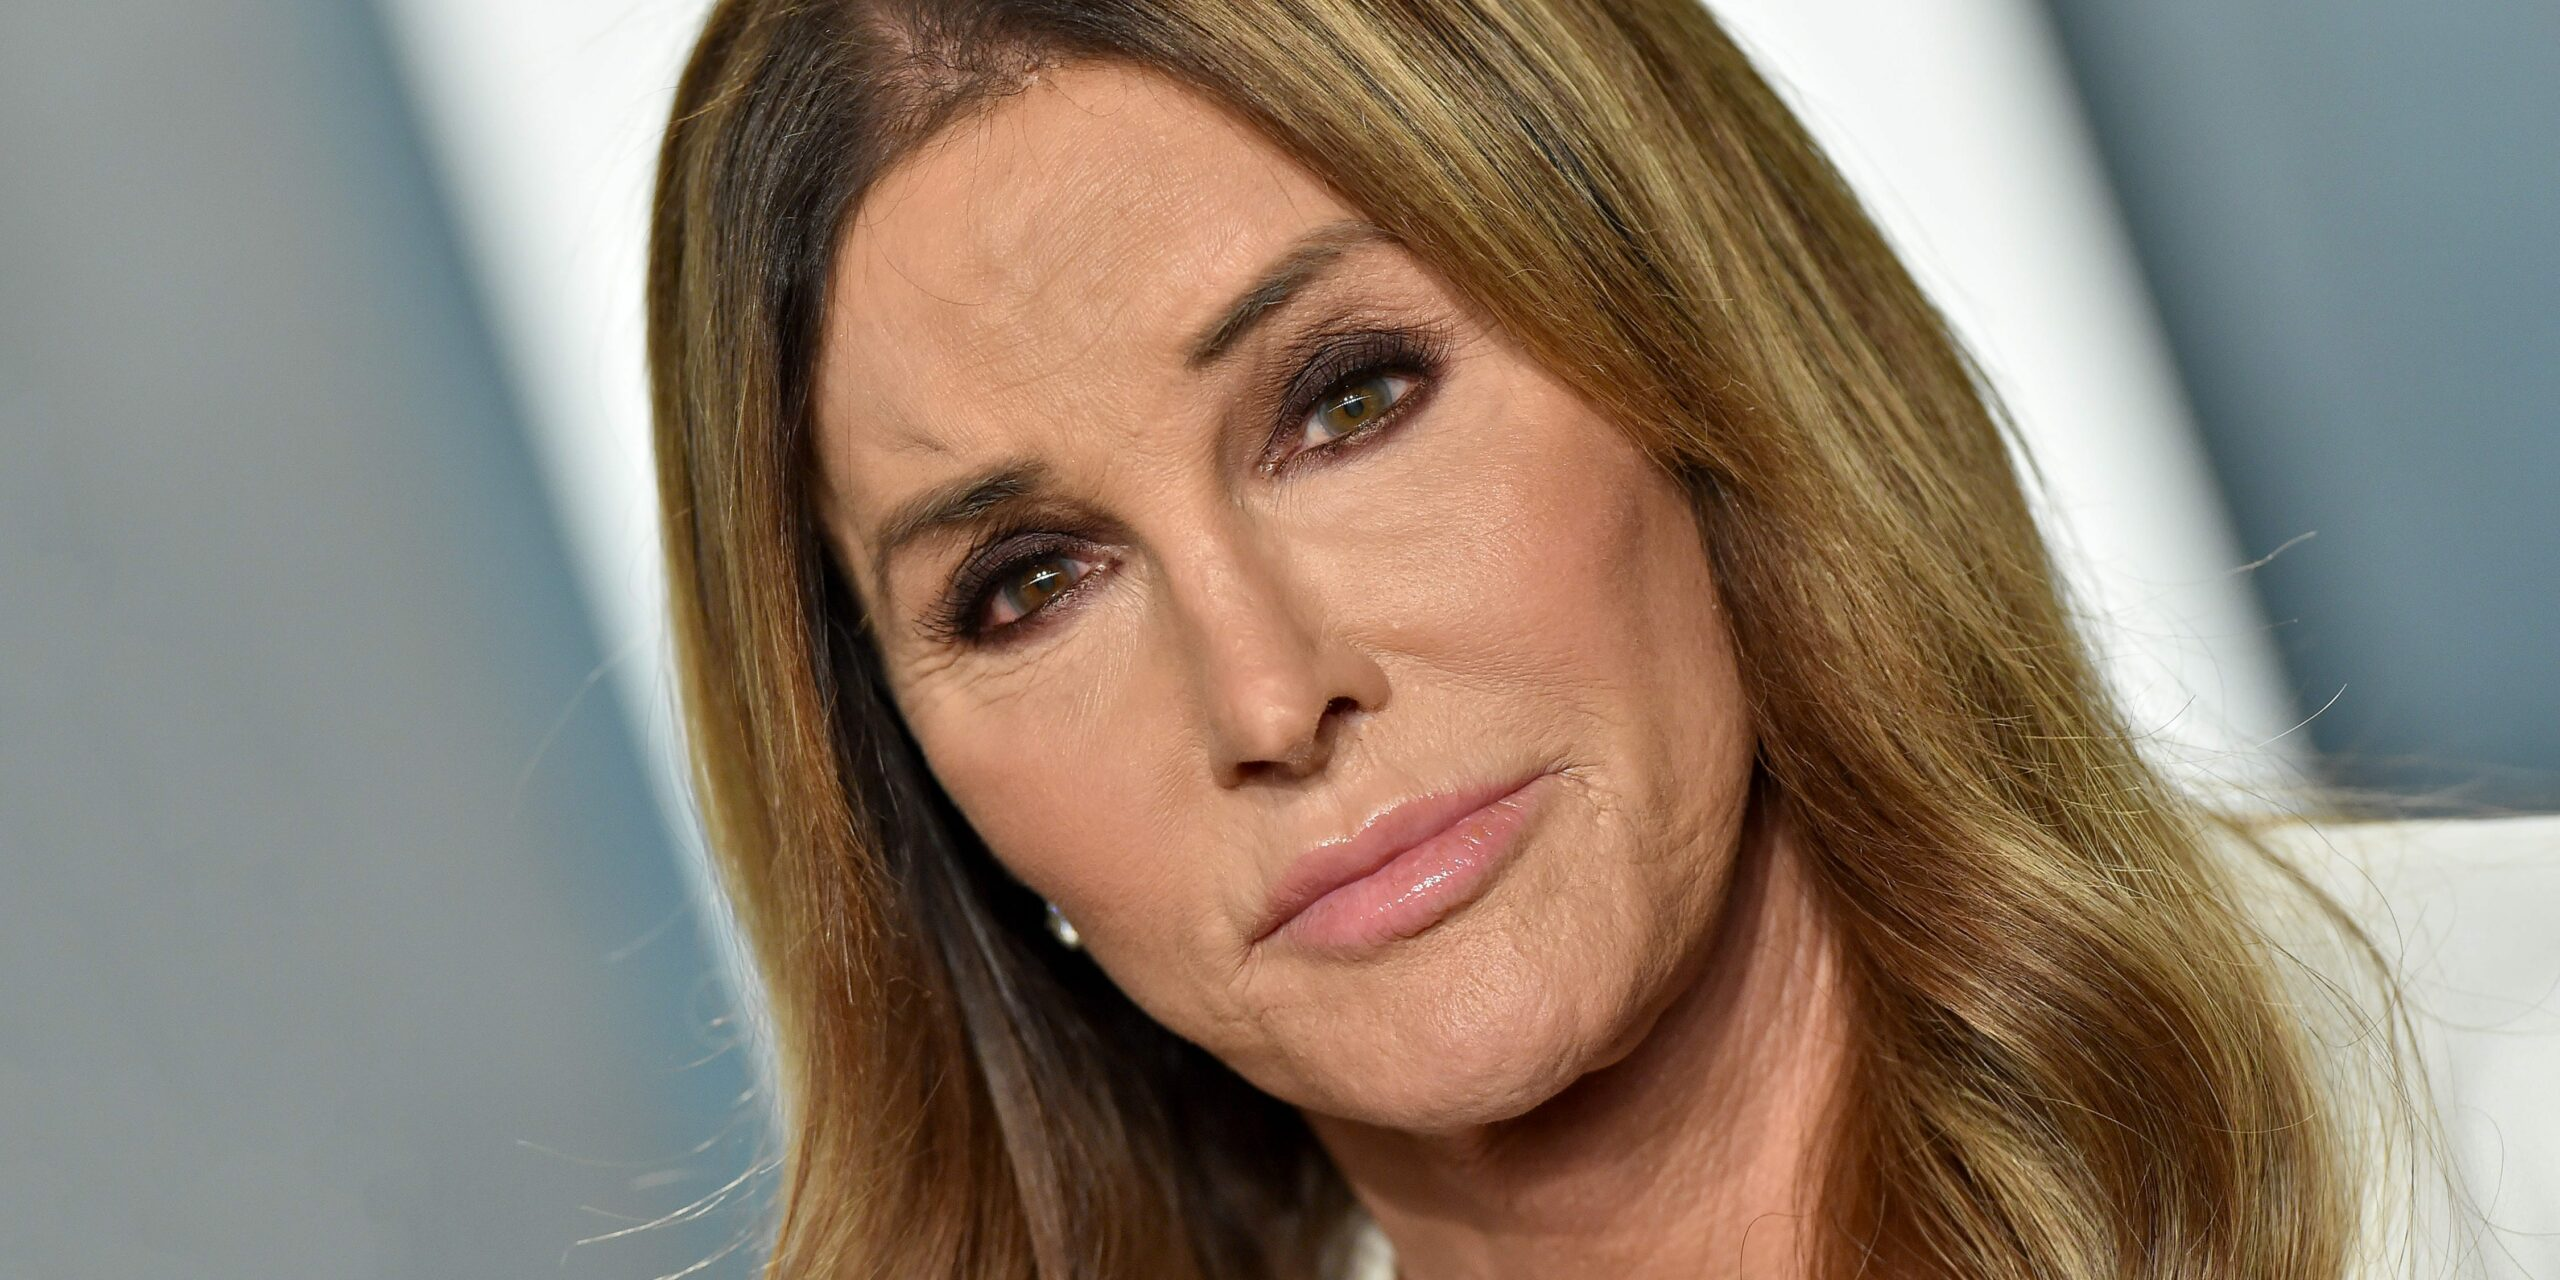 Australia is letting in people like Caitlyn Jenner while thousands of its own citizens are stuck overseas due to COVID-19 rules